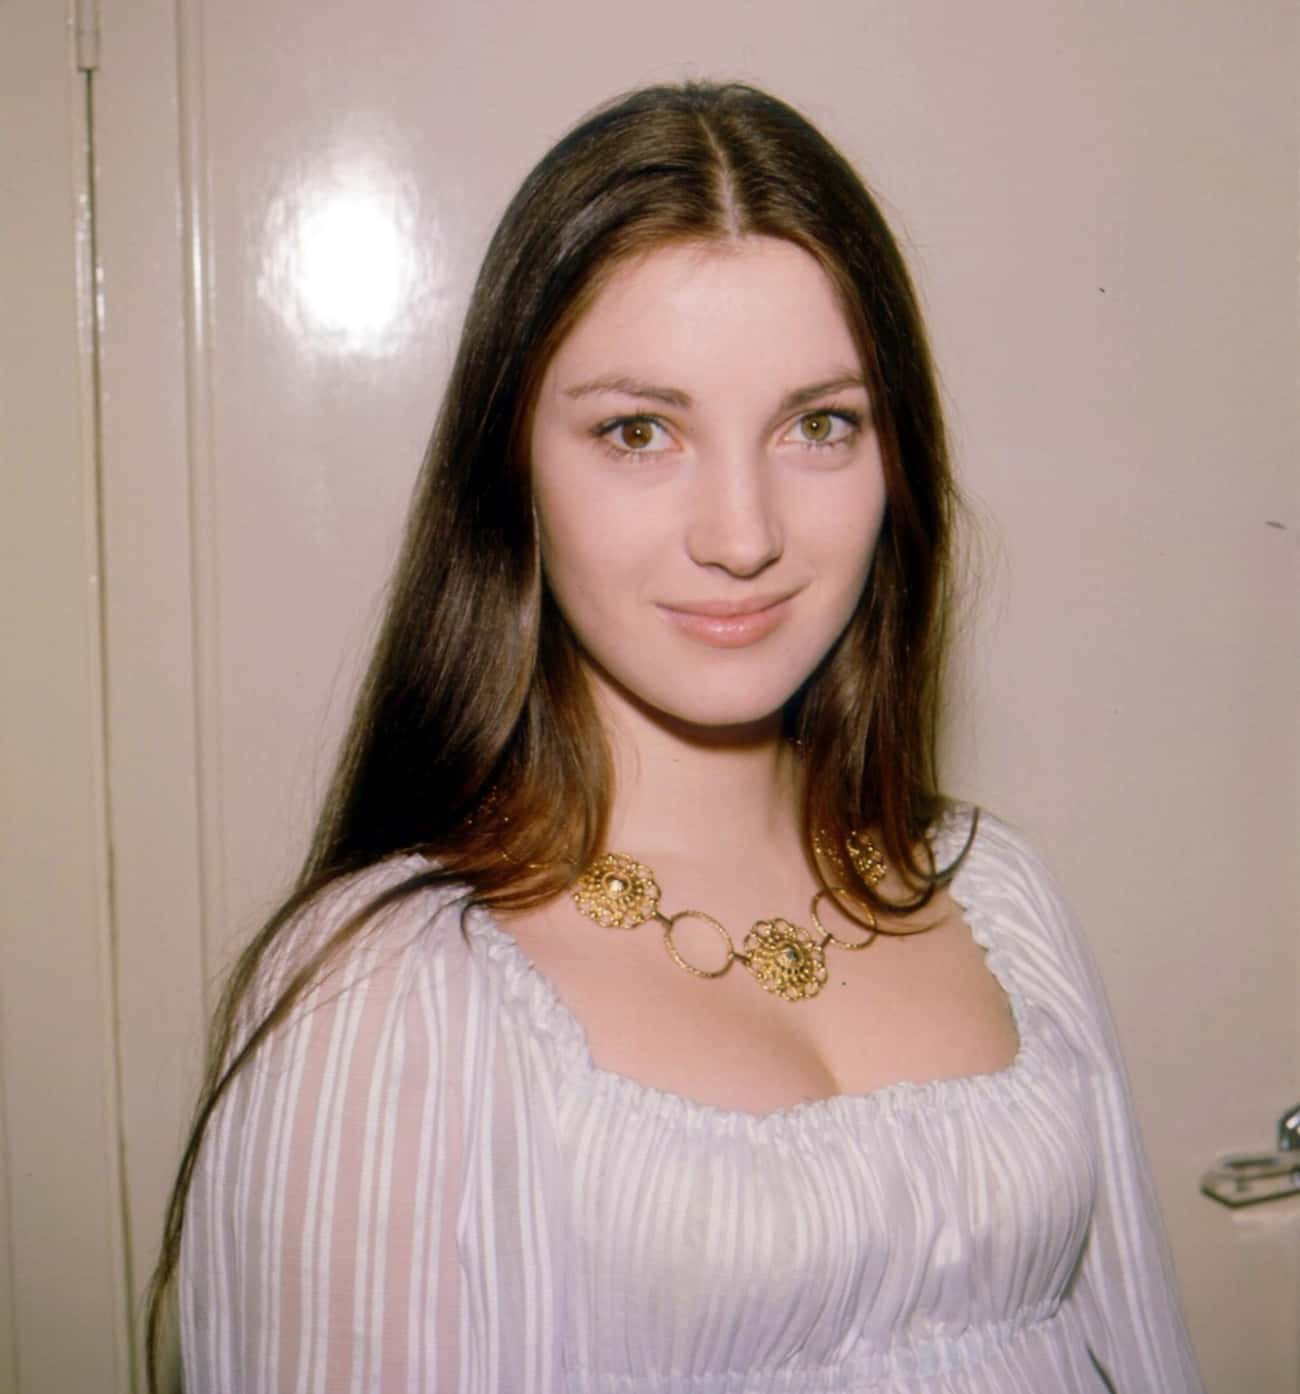 Young Jane Seymour in White Bl is listed (or ranked) 4 on the list 30 Pictures of Young Jane Seymour